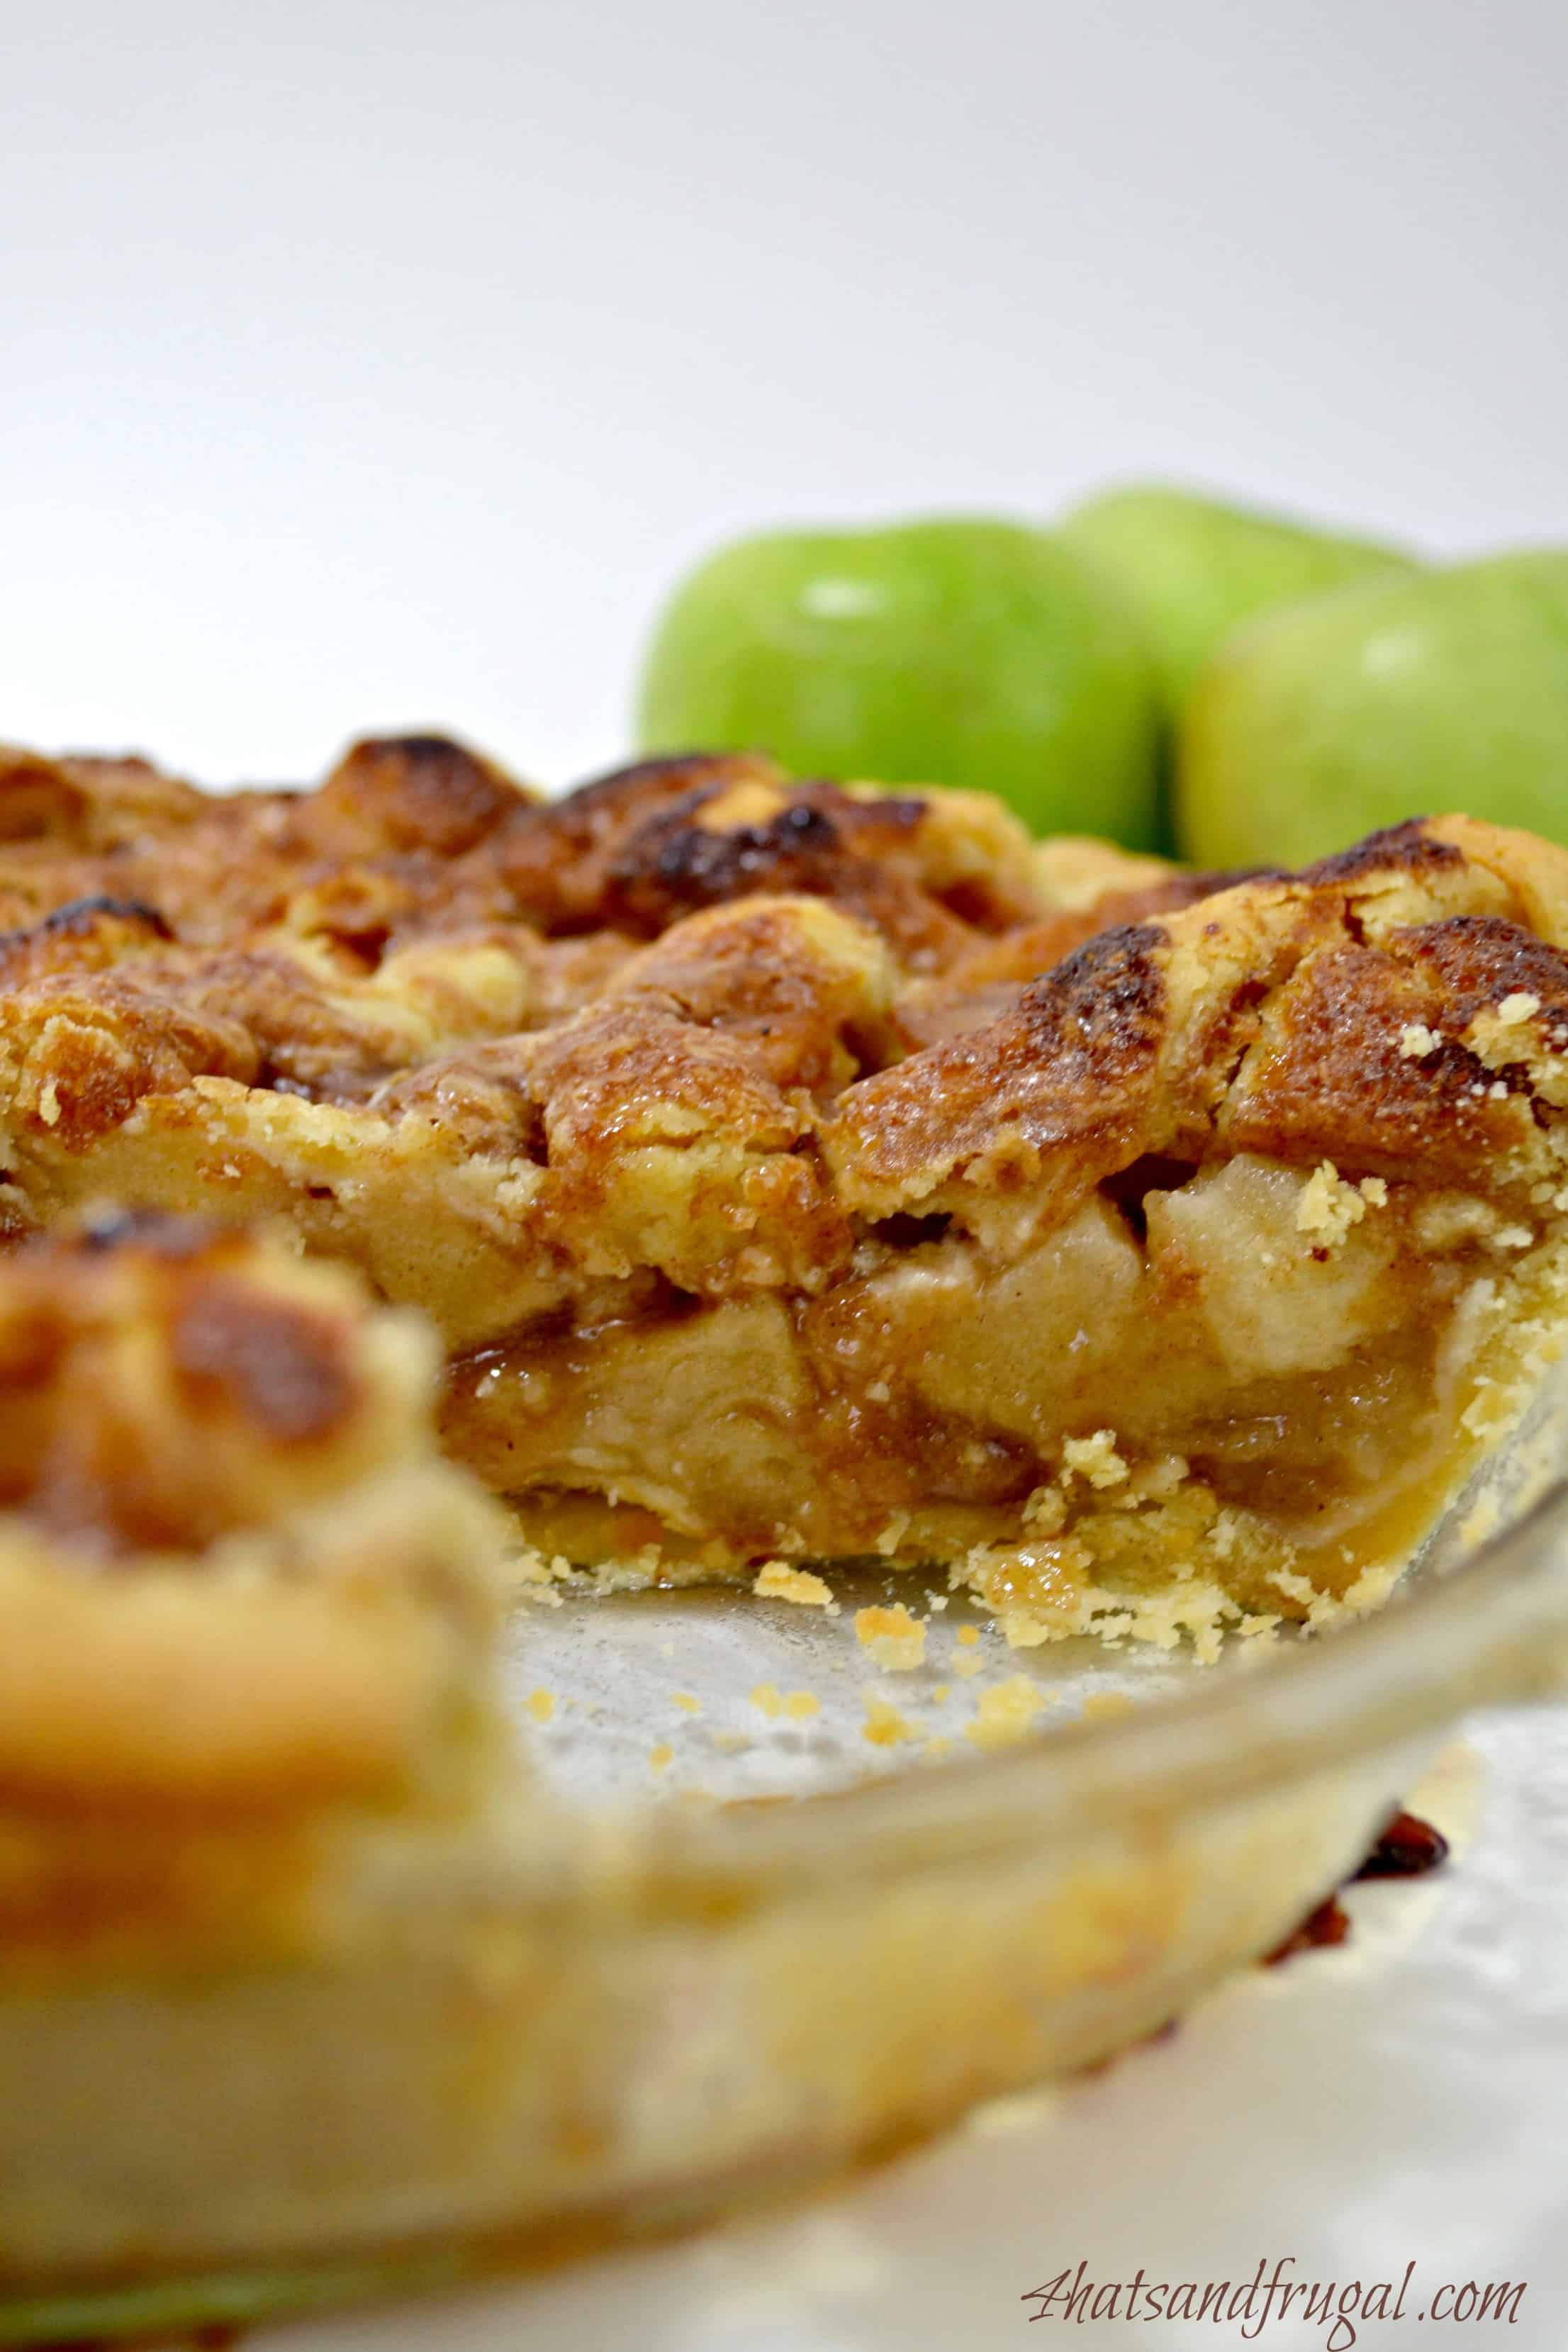 Easy Apple Pie - 4 Hats and Frugal